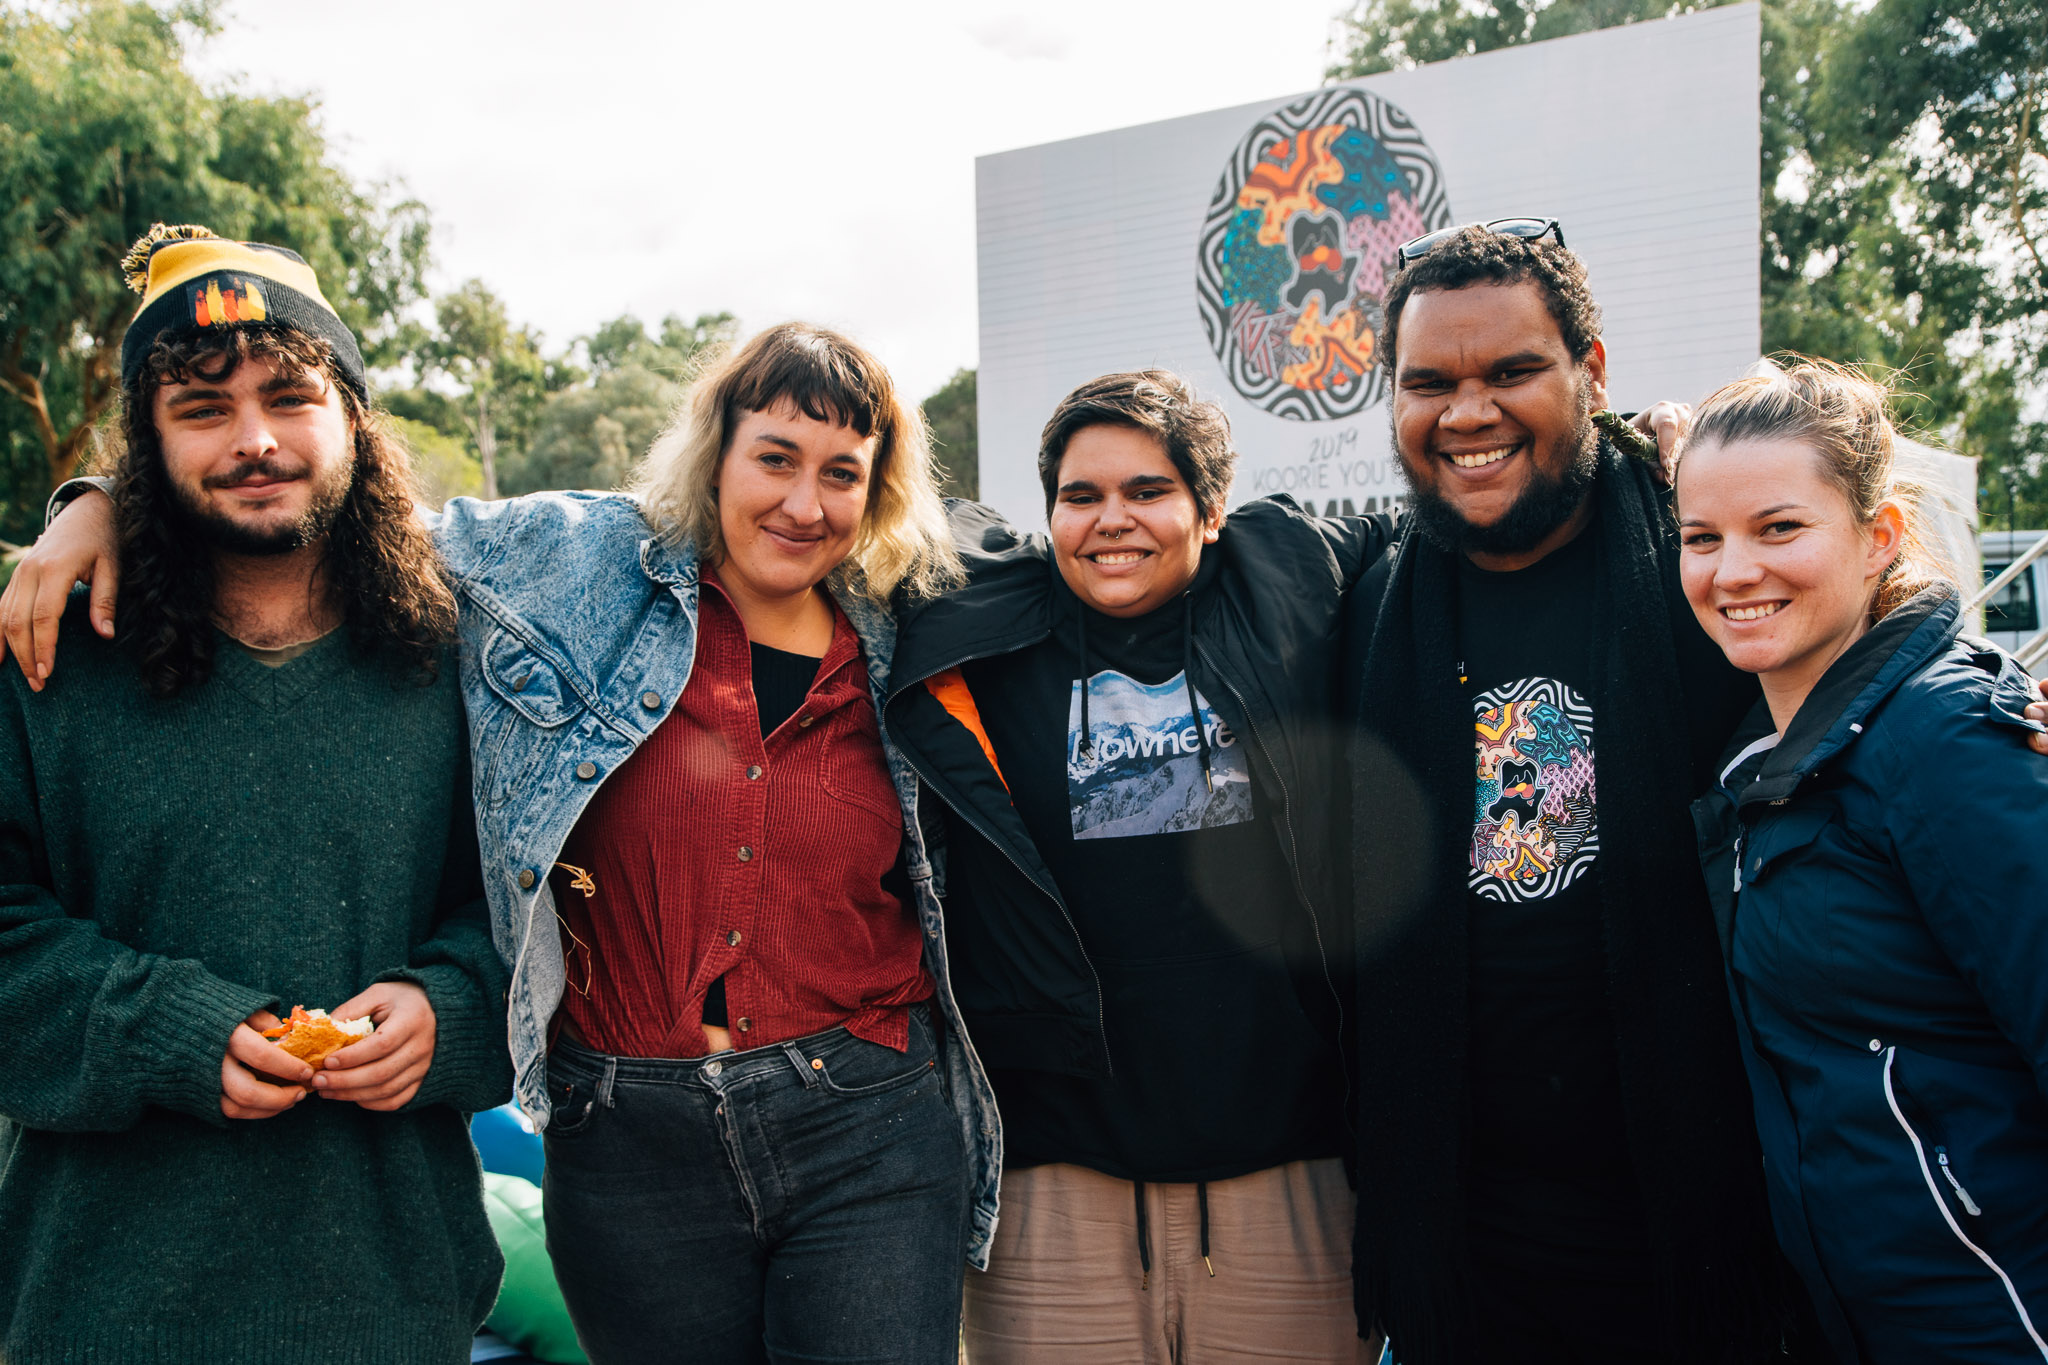 Group of young people smiling